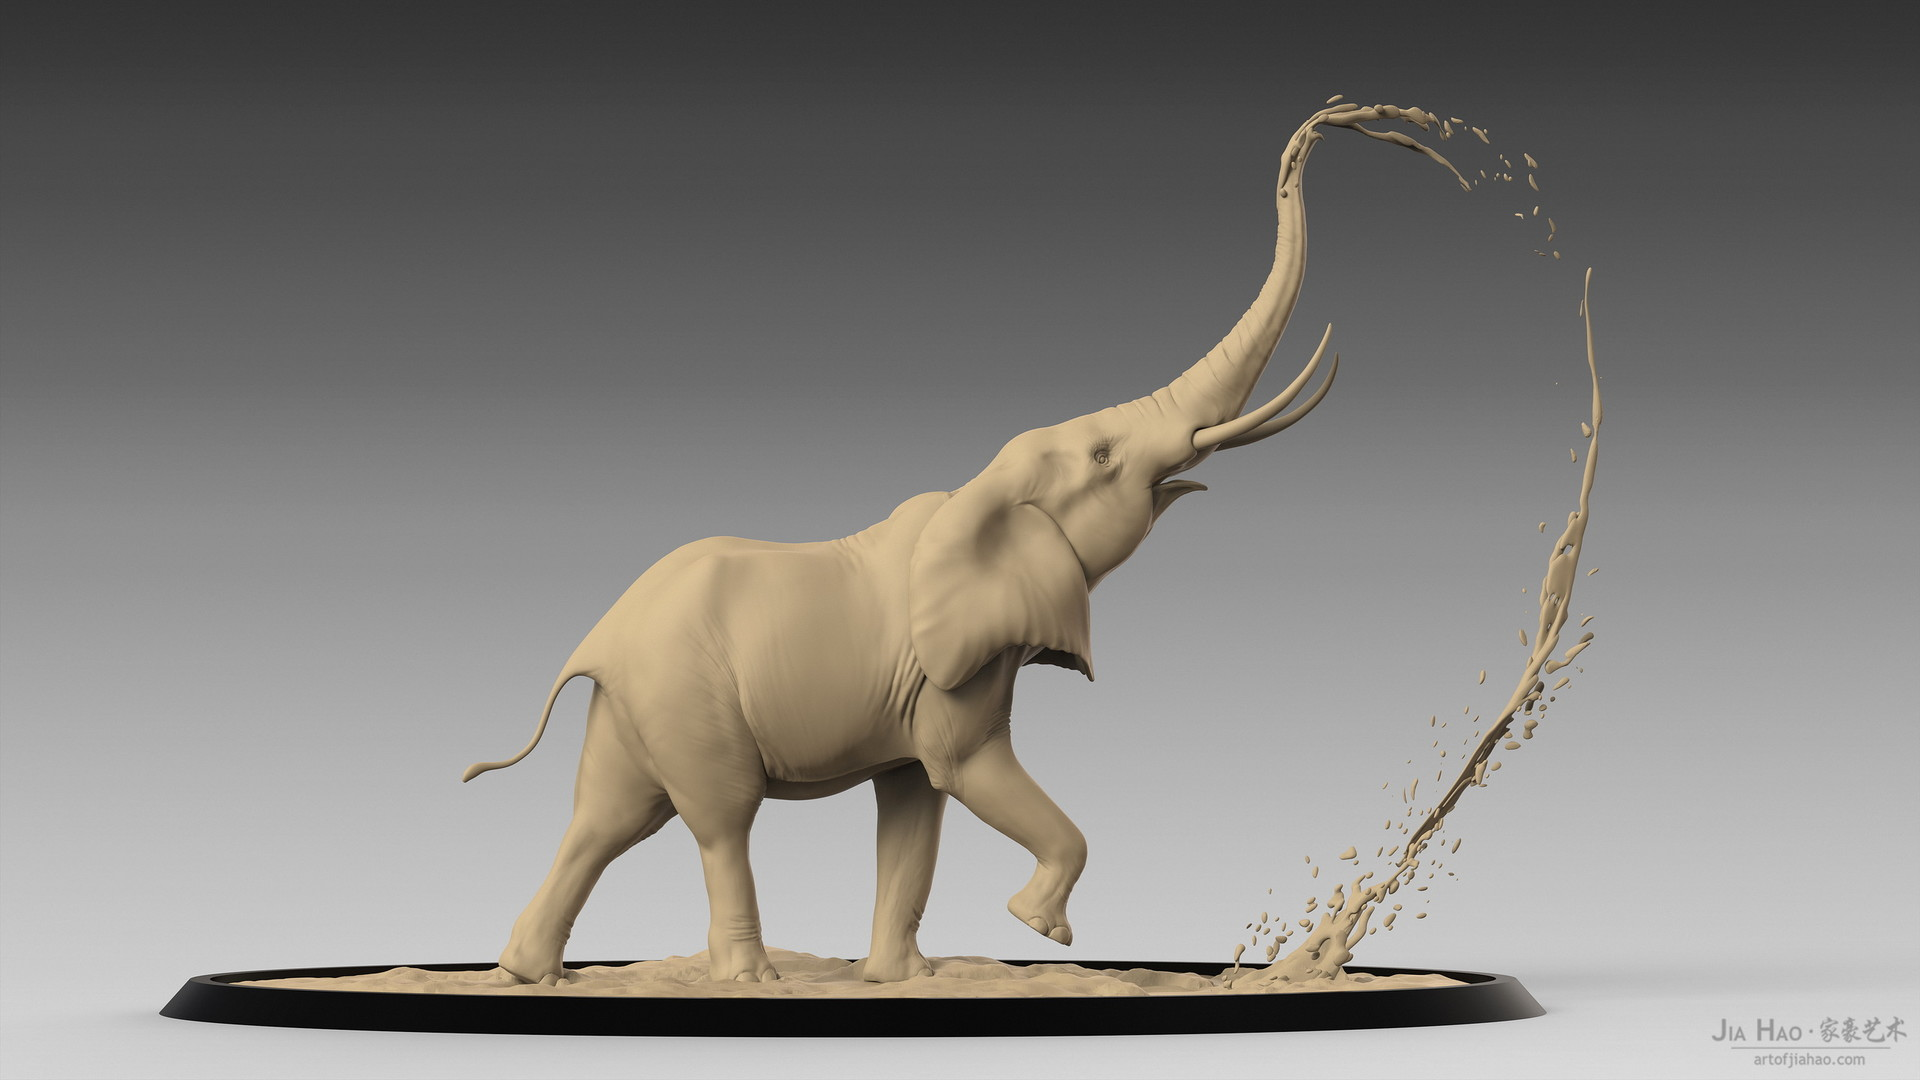 Jia hao africanelephant digitalsculpturea 04